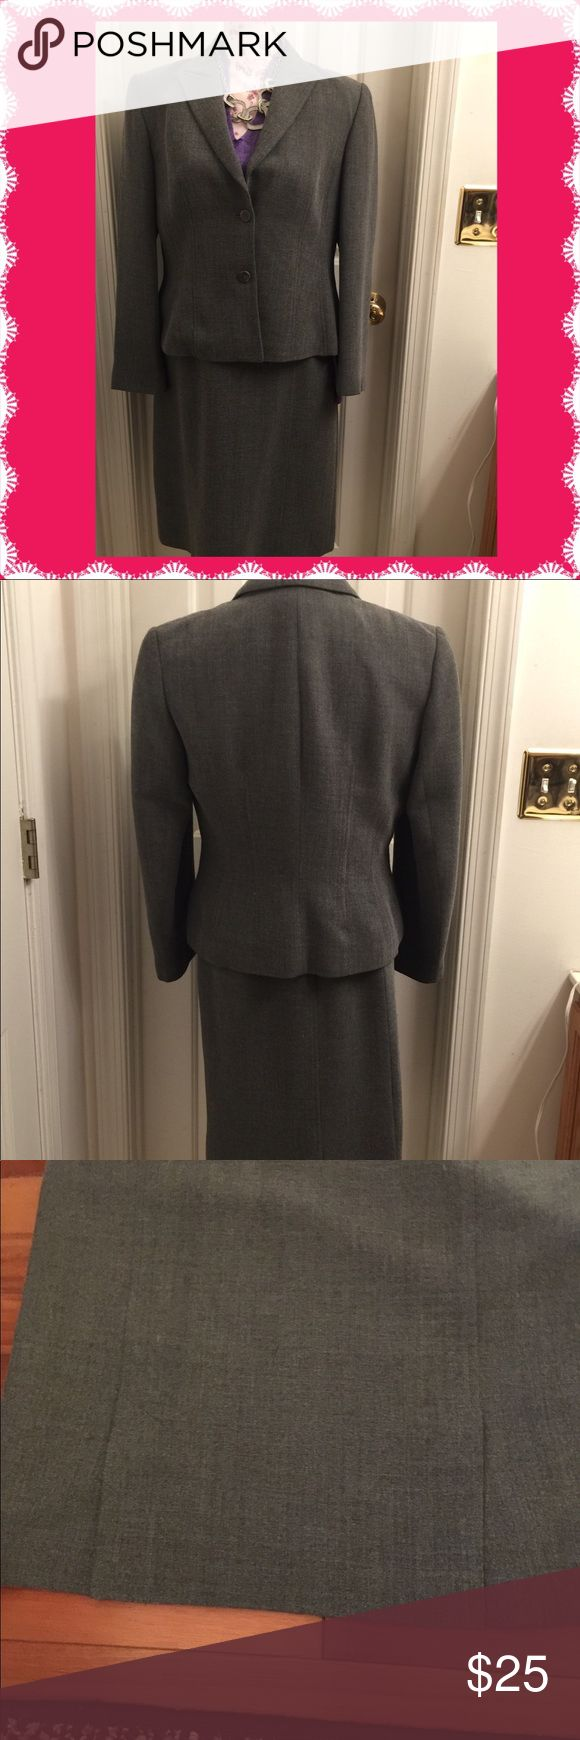 Laura Ashley Suit Very nice gray Laura Ashely suit. Skit and jacket.  Skirt is 28 inches in length ( measured from the bottom of the waistband) Jacket is 22 inches in length and 20 inches armpit to armpit. The skirt has a panel that creates a slit on each side in the back )see last two pictures) Zips on the side. A must have for the professional woman. 51% Rayon 41% Wool 2% Elastane. Both skirt and jacket are lined. Laura Ashley Skirts